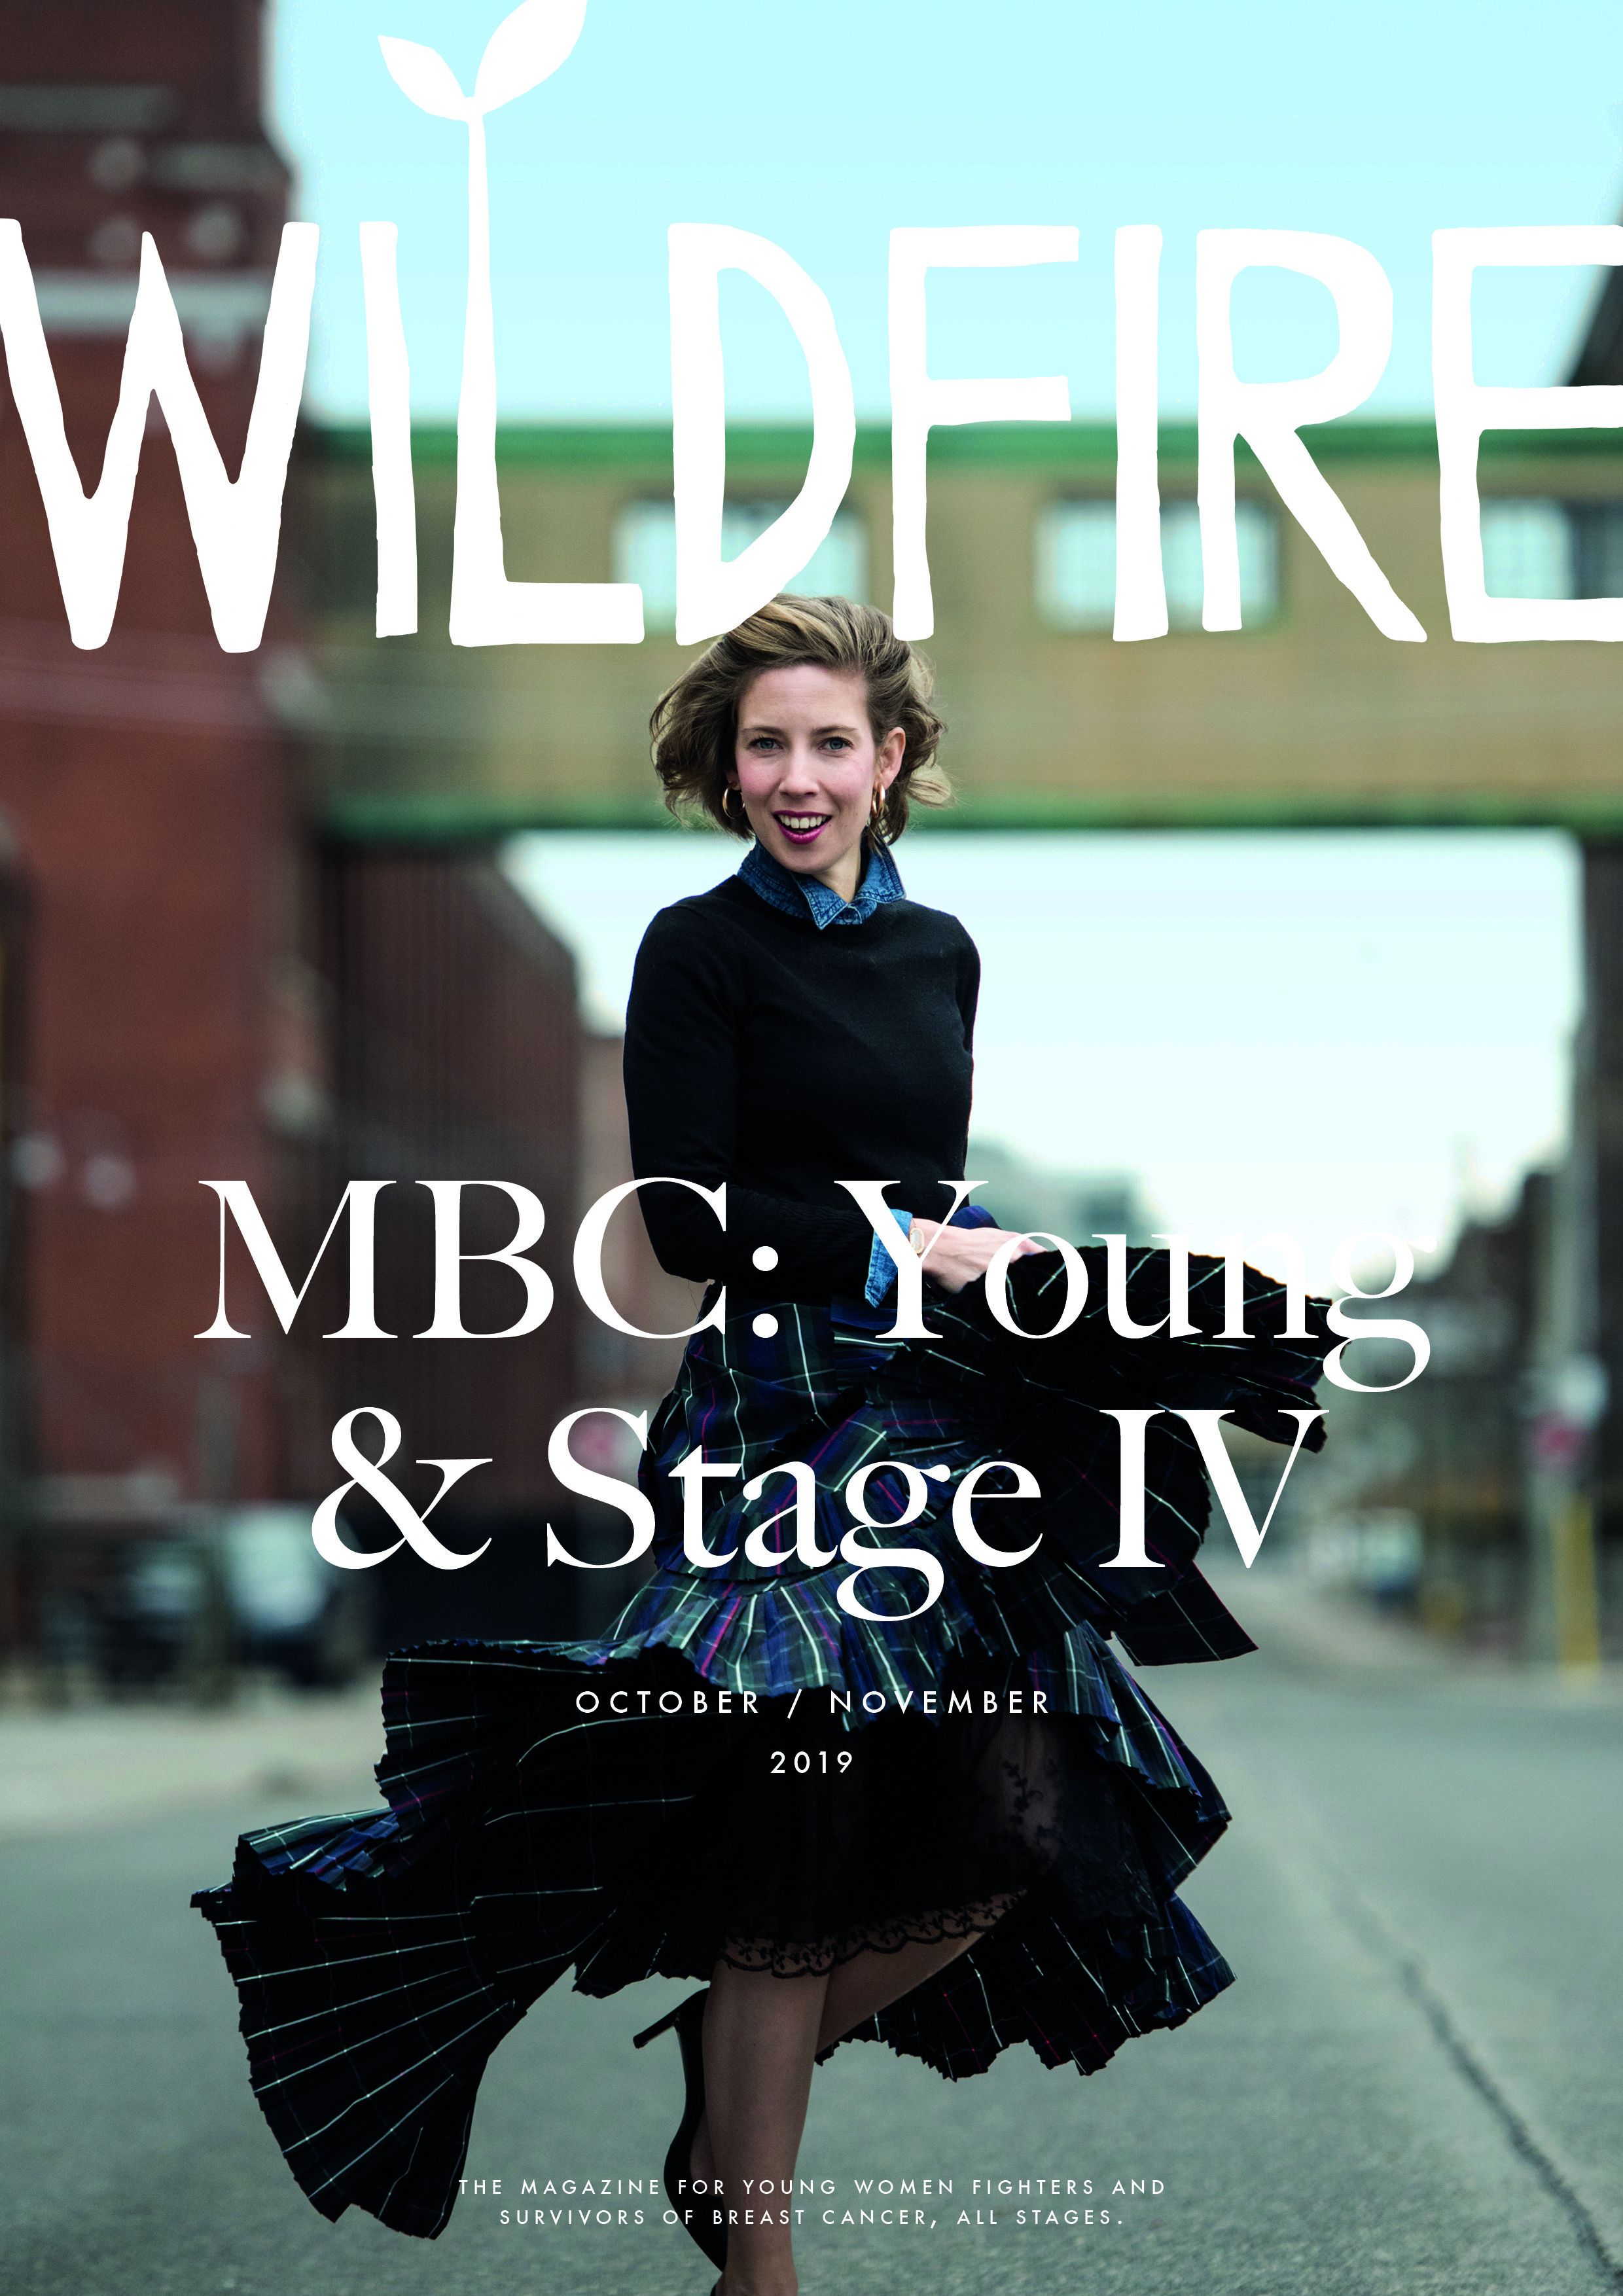 MBC: YOUNG & STAGE IV - October / November 2019   Vol. 4, Issue 5Guest Editors: MJ DeCoteau, Tania Kwong, and Emily Piercell, Rethink Breast CancerCover model: Nadine ParsonsContents:Deliver the Day poem by Teva Harrison   Love… And Metastatic Breast Cancer by Abigail Johnston   Rainbow Connection by Renee Kaiman   Twenty-Five by Savanah Ponce   Thrive to Shine a photo story by Nadine Parsons   Collateral Damage by Patricia Stoop   SOS by Vesna Zic-Cote   Journey to Advocacy by Deborah Croskrey   I'm in a Hurry a poem by Marie-Claude Belzile   Edwin by Ashley Fast   Seasons by Johanna Tran   Evolving Soul by Tameka Johnson   Never All Better by Adriana Capozzi   I Did Everything Right by Cancer ConfessionsPLUS: Outside In: Reader Stories   The Warrior Language of Yoga & MBC   Mediterranean Magic: Is it All in the Olive Oil?: Nutrition   Roasted Olives With Citrus & Herbs: Recipe   Tell Your Story: The One ThingAdditional Contributors: Rebecca Hall Dickson, Rebecca Katz, Sarah Blackmore, Myra Camino, Vivian Chu, Sharon Coulter, Kelli Davis, Melaie De Souza, Melissa Kaufman, Shellie Long Kendrick, Kelly Shanahan, Terlisa Sheppard, Danielle Thurston, Rebecca Timlin-Scalera, Karla Tolstoy, Karen WallClick To Purchase a Print Copy of This Issue